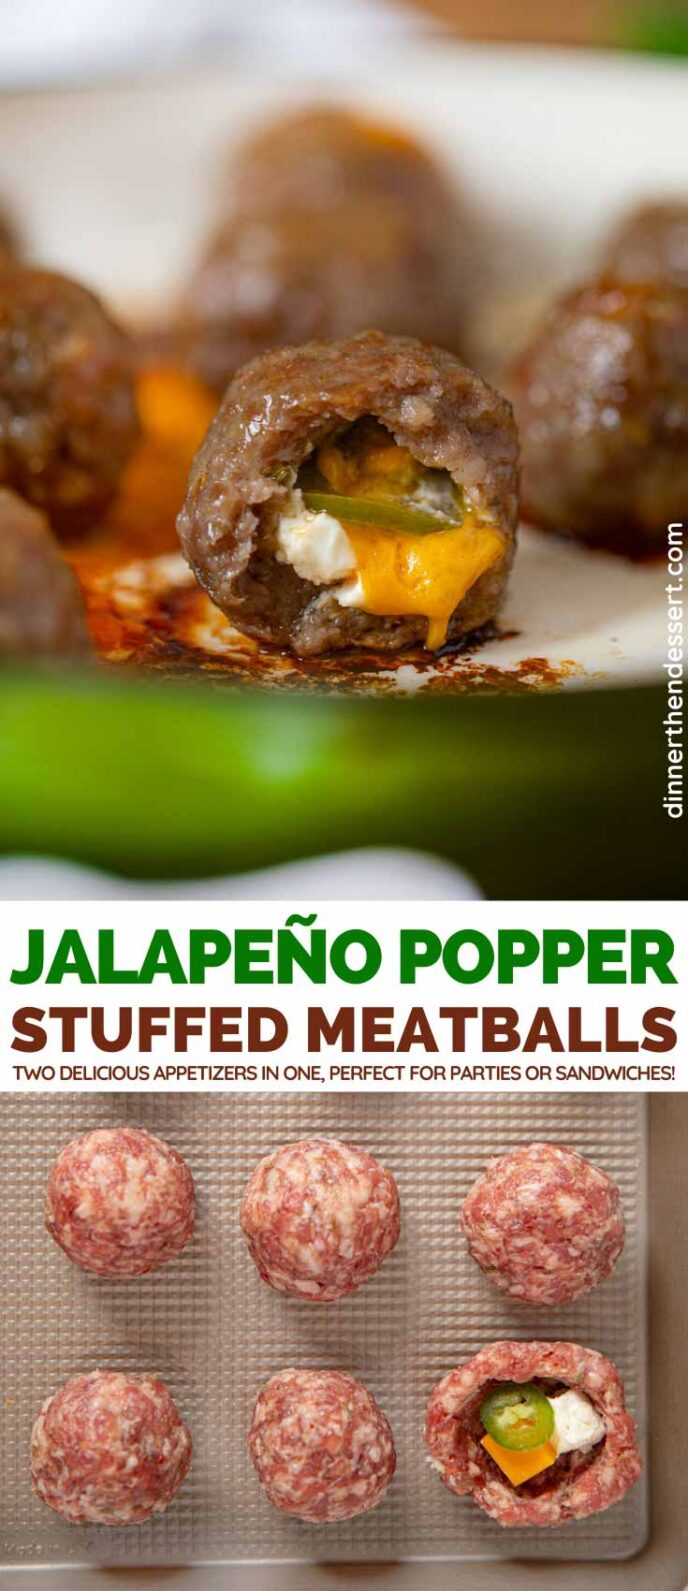 Jalapeno Popper Stuffed Meatballs collage